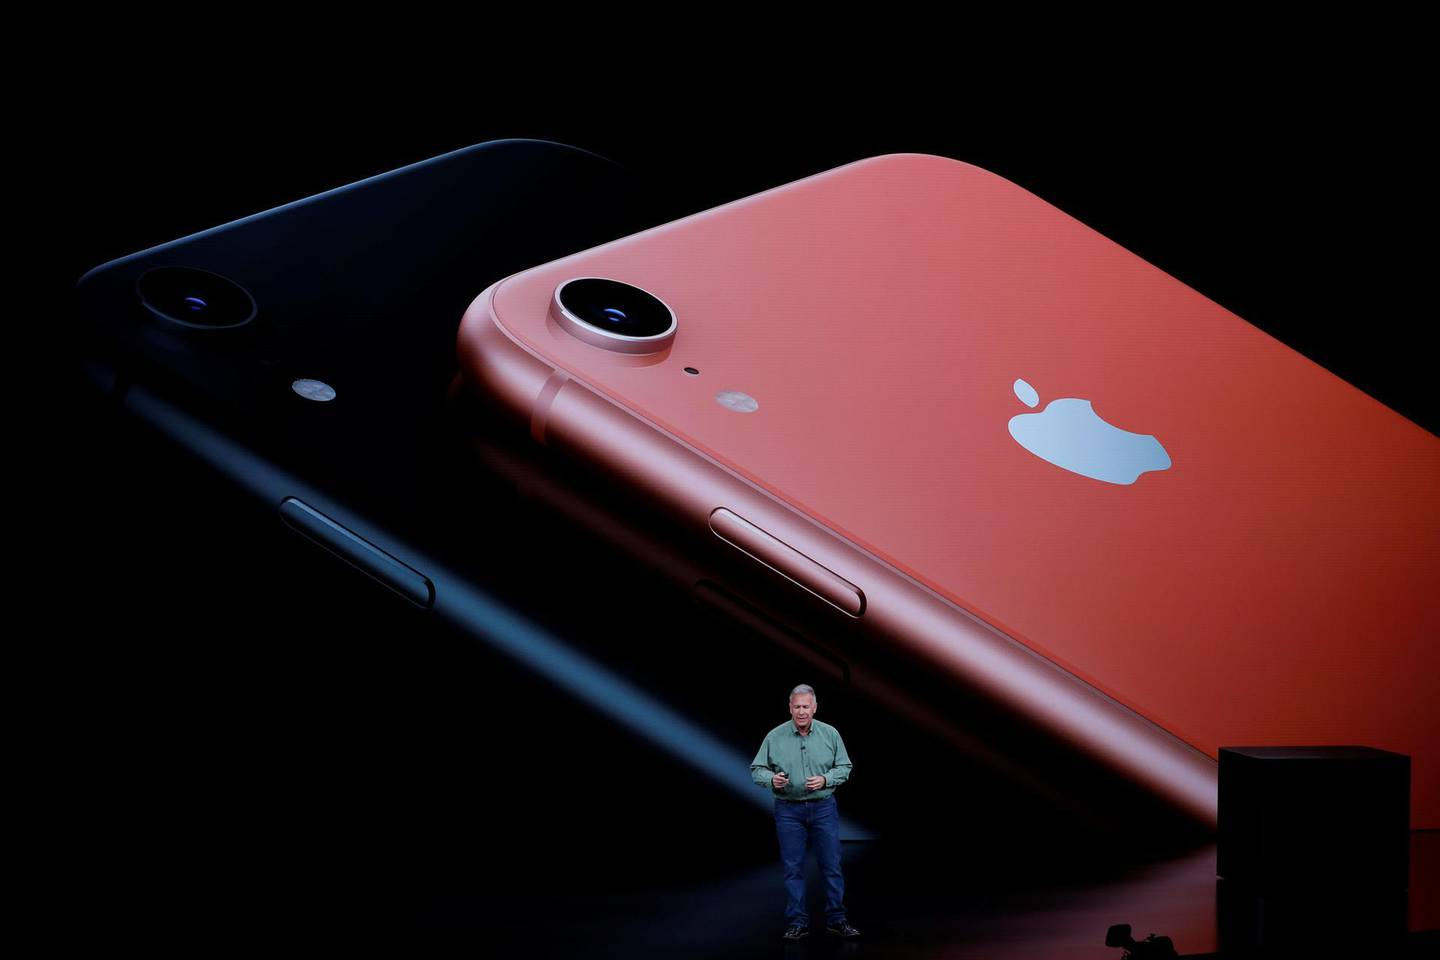 FILE PHOTO: Philip W. Schiller, Senior Vice President, Worldwide Marketing of Apple, speaks about the new Apple iPhone XR at an Apple Inc product launch event at the Steve Jobs Theater in Cupertino, California, U.S., September 12, 2018. REUTERS/Stephen Lam/File Photo